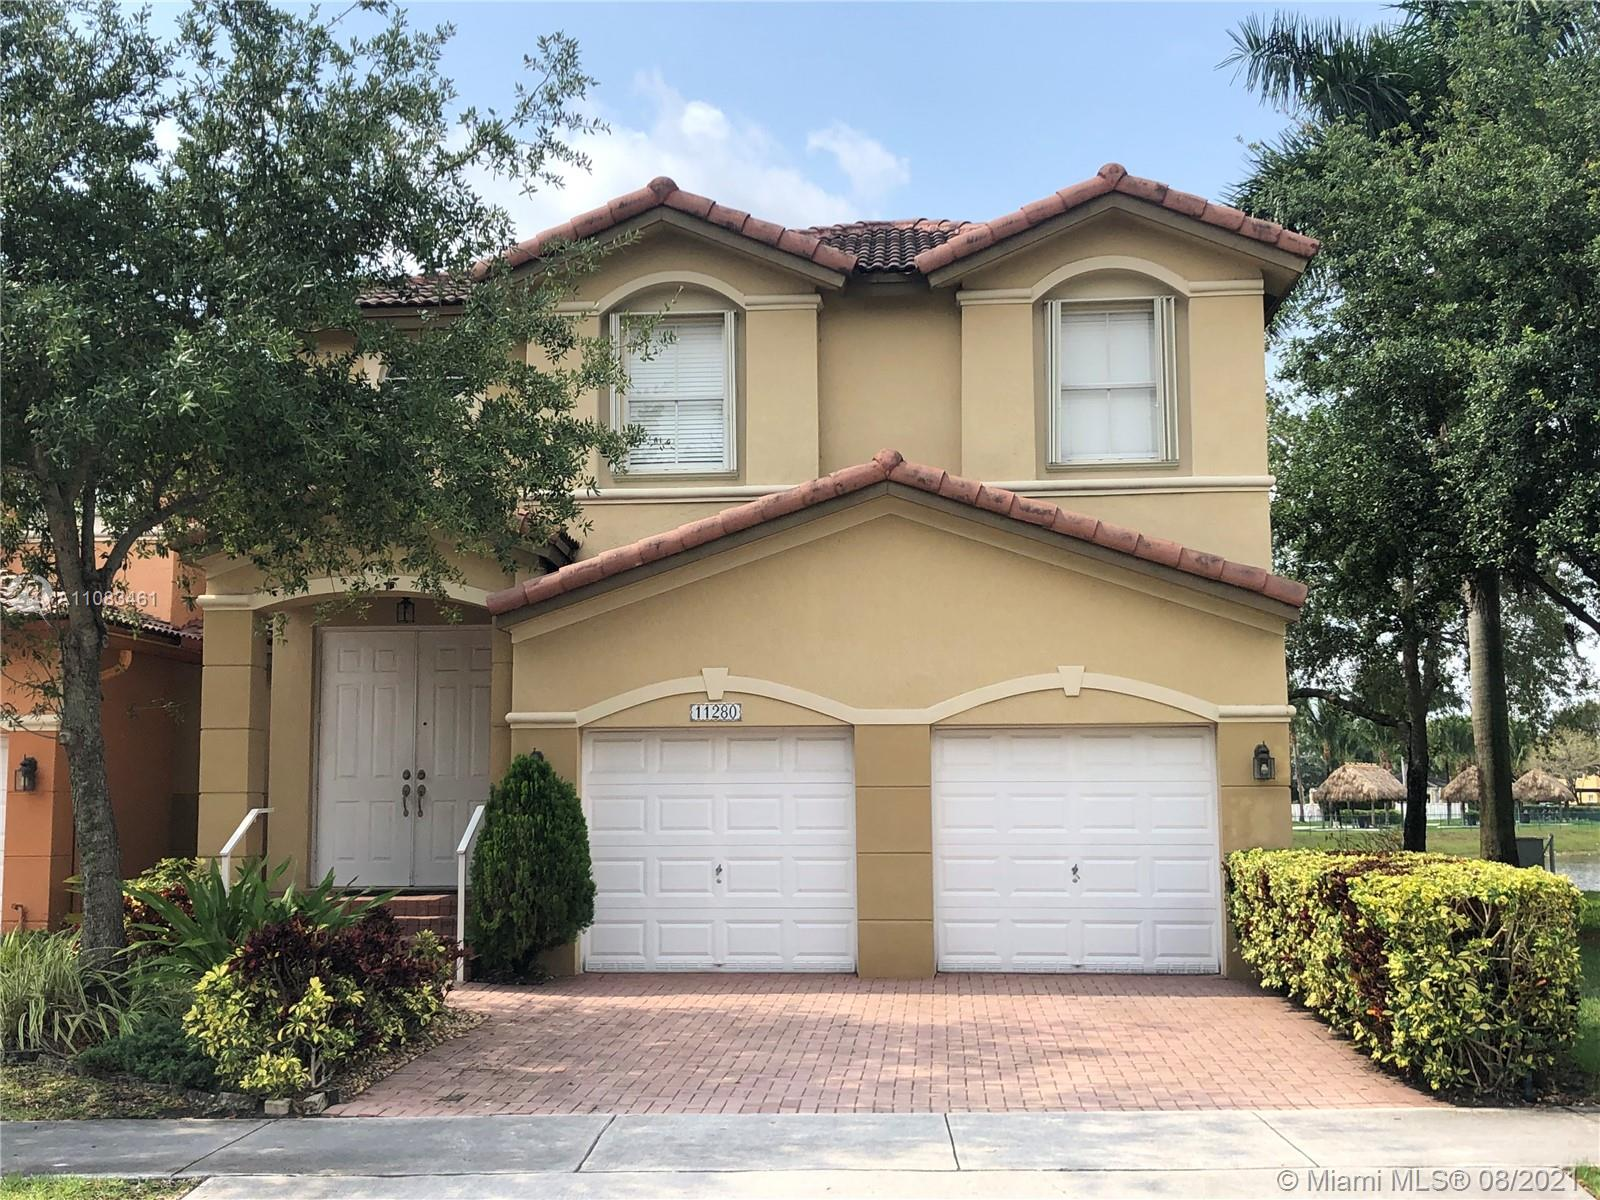 Photo of 11280 NW 84th St, Doral, FL 33178